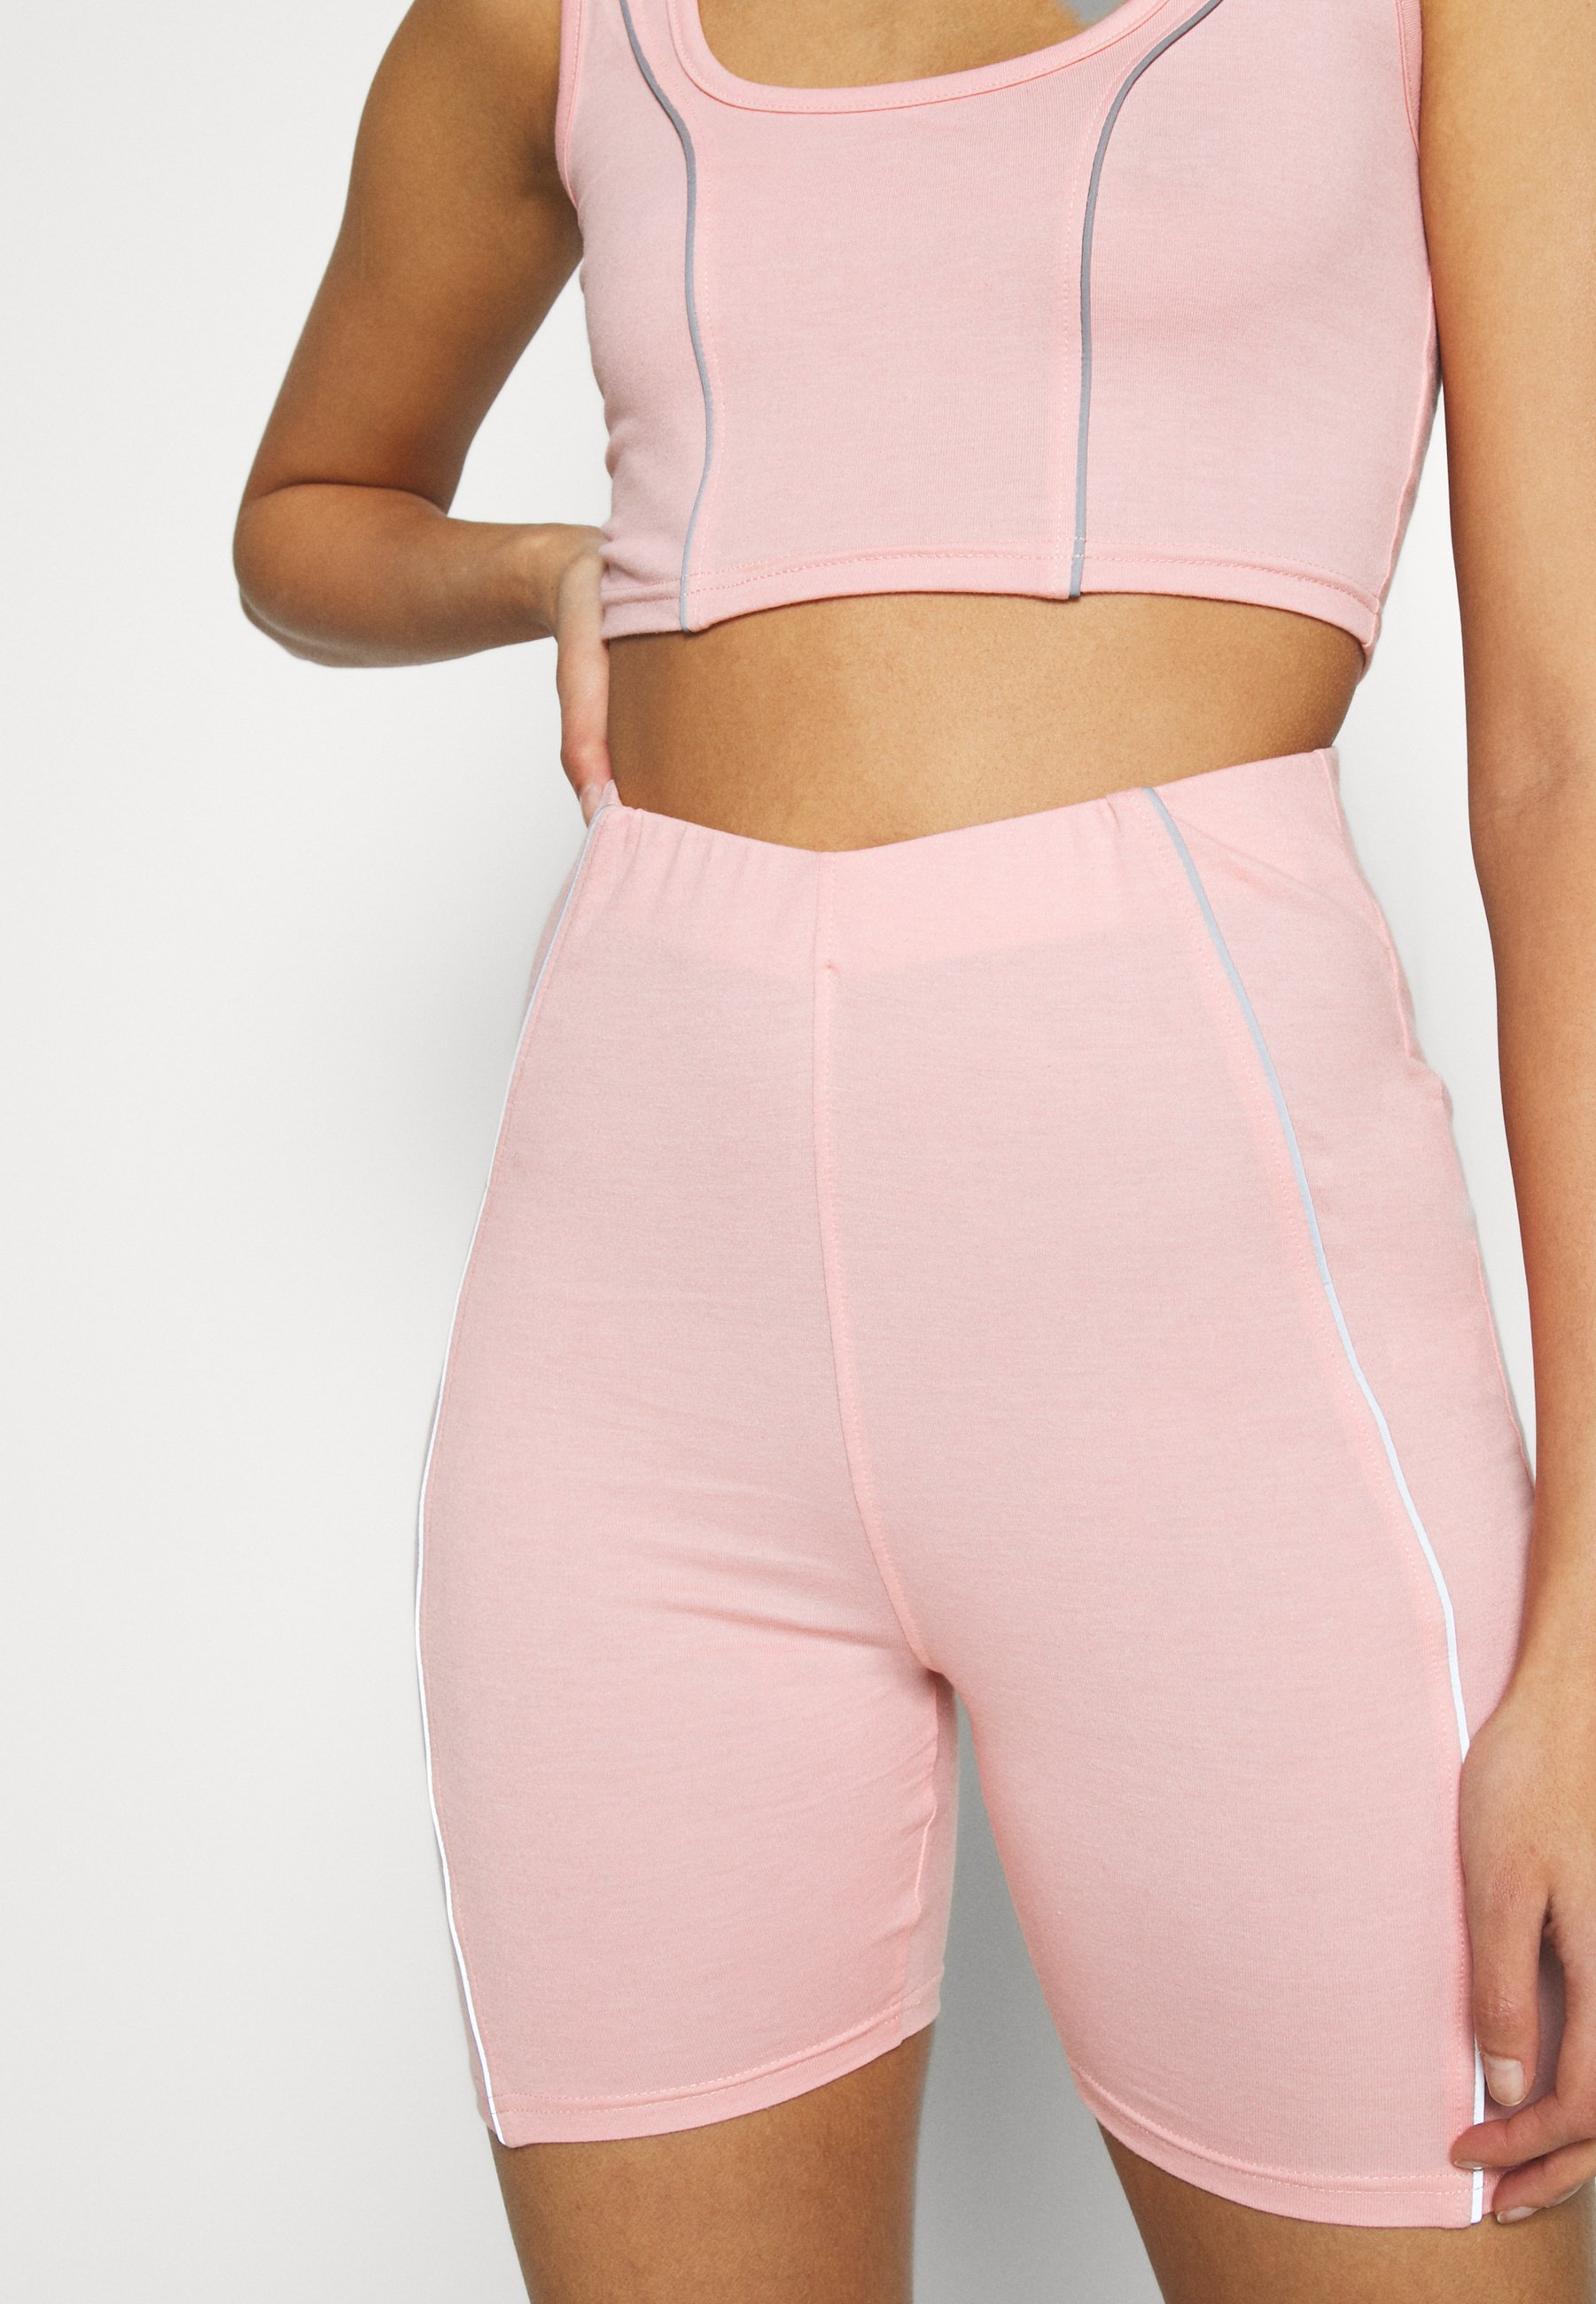 Missguided CODE CREATE REFLECTIVE DETAIL CROP TOP SHORT - Top - pink